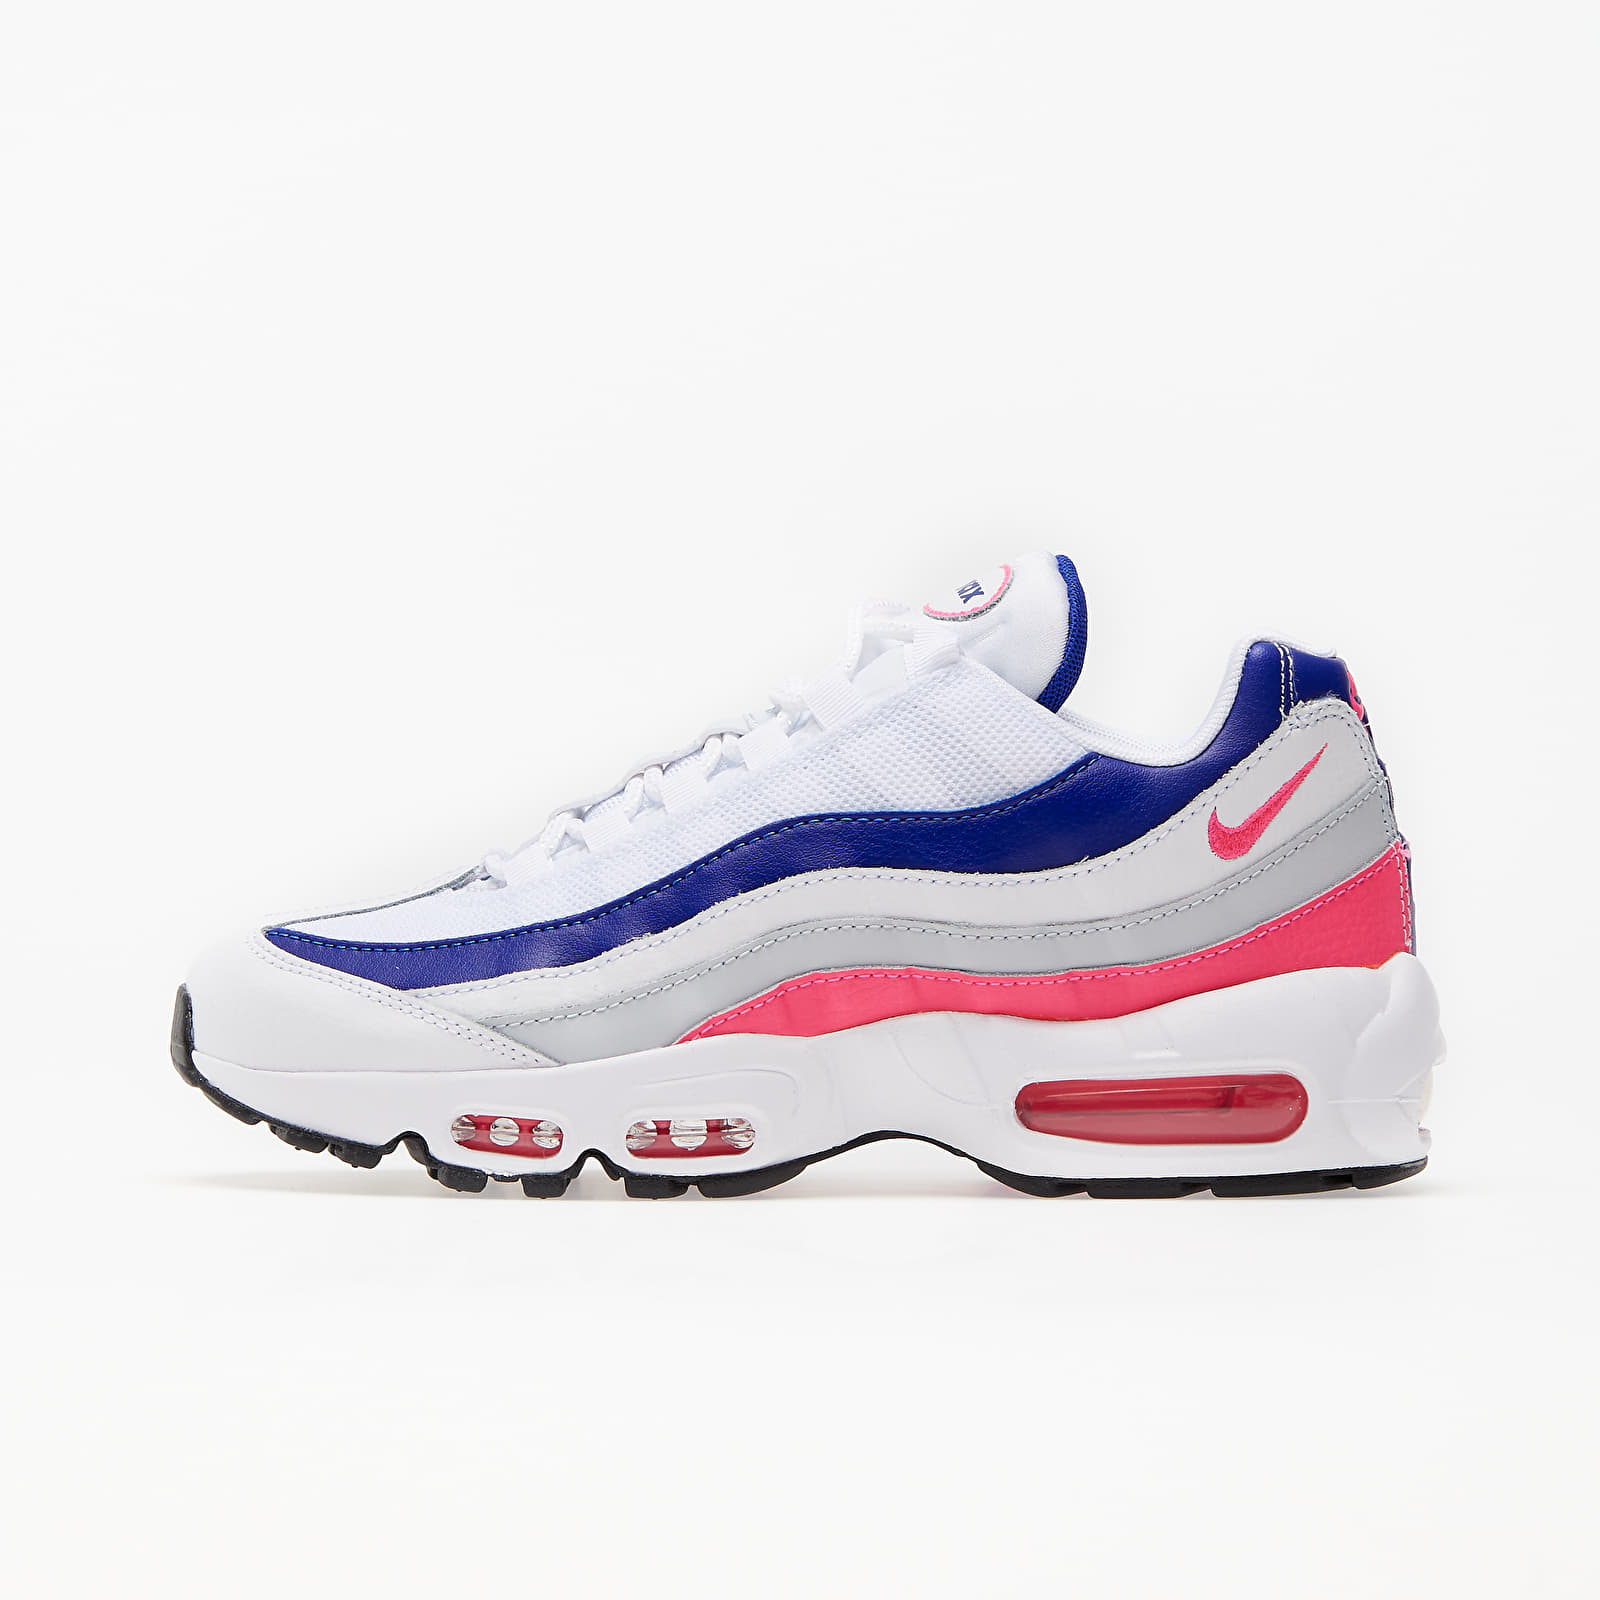 Women's shoes Nike Wmns Air Max 95 White/ Hyper Pink-Concord-Pure Platinum